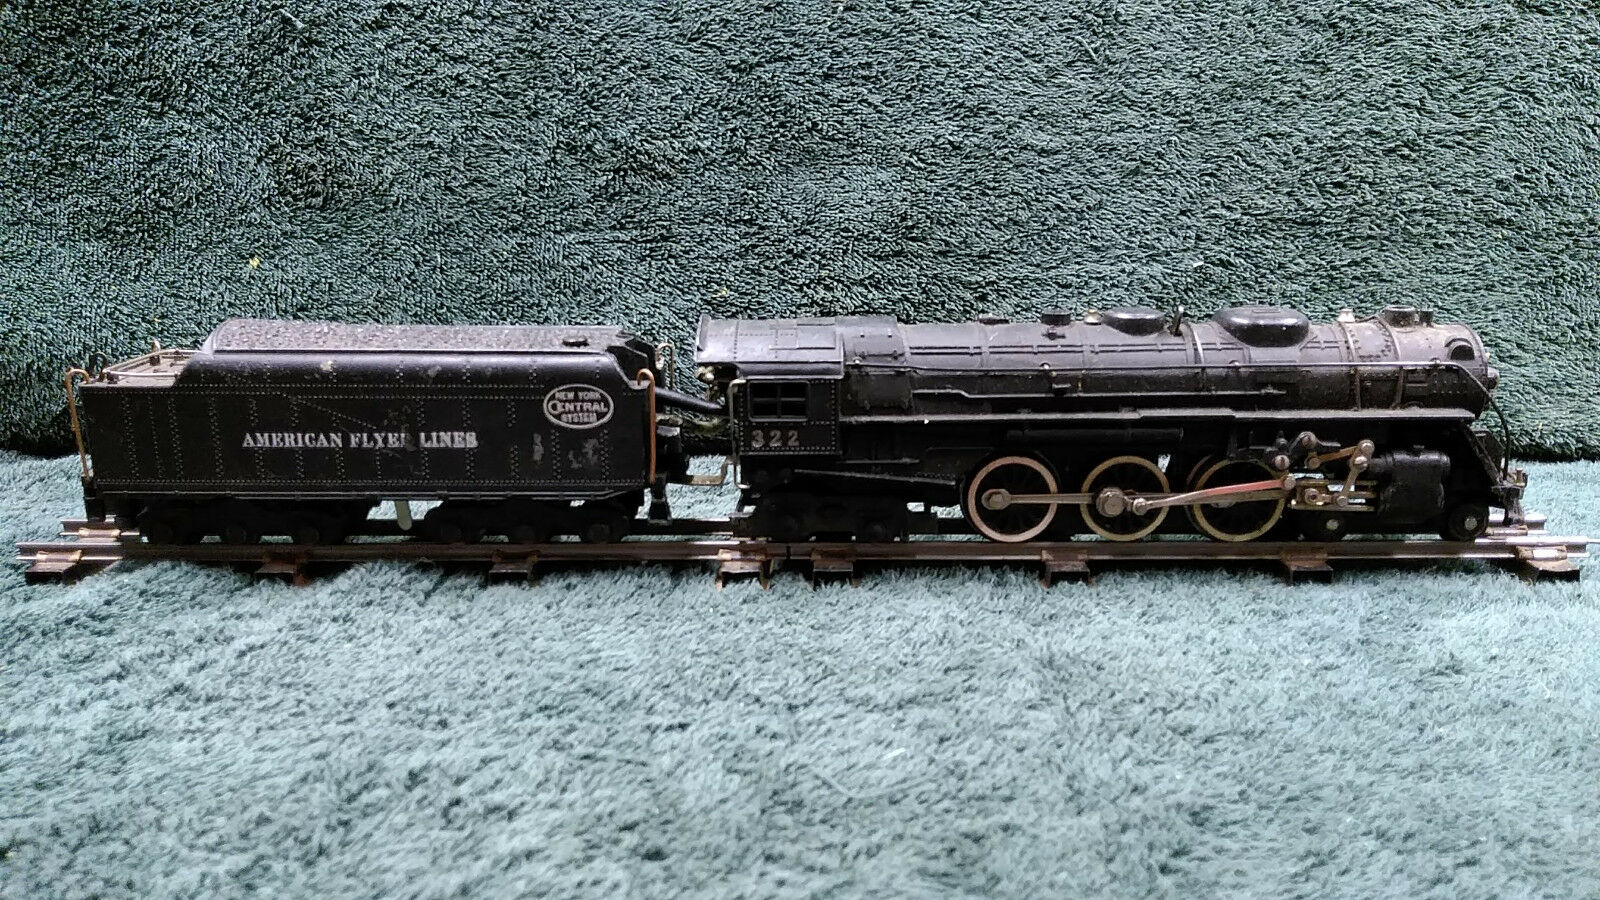 AMERICAN FLYER 322 NYC 4-6-4 HUDSON LOCOMOTIVE & TENDER RECENTLY SERVICED